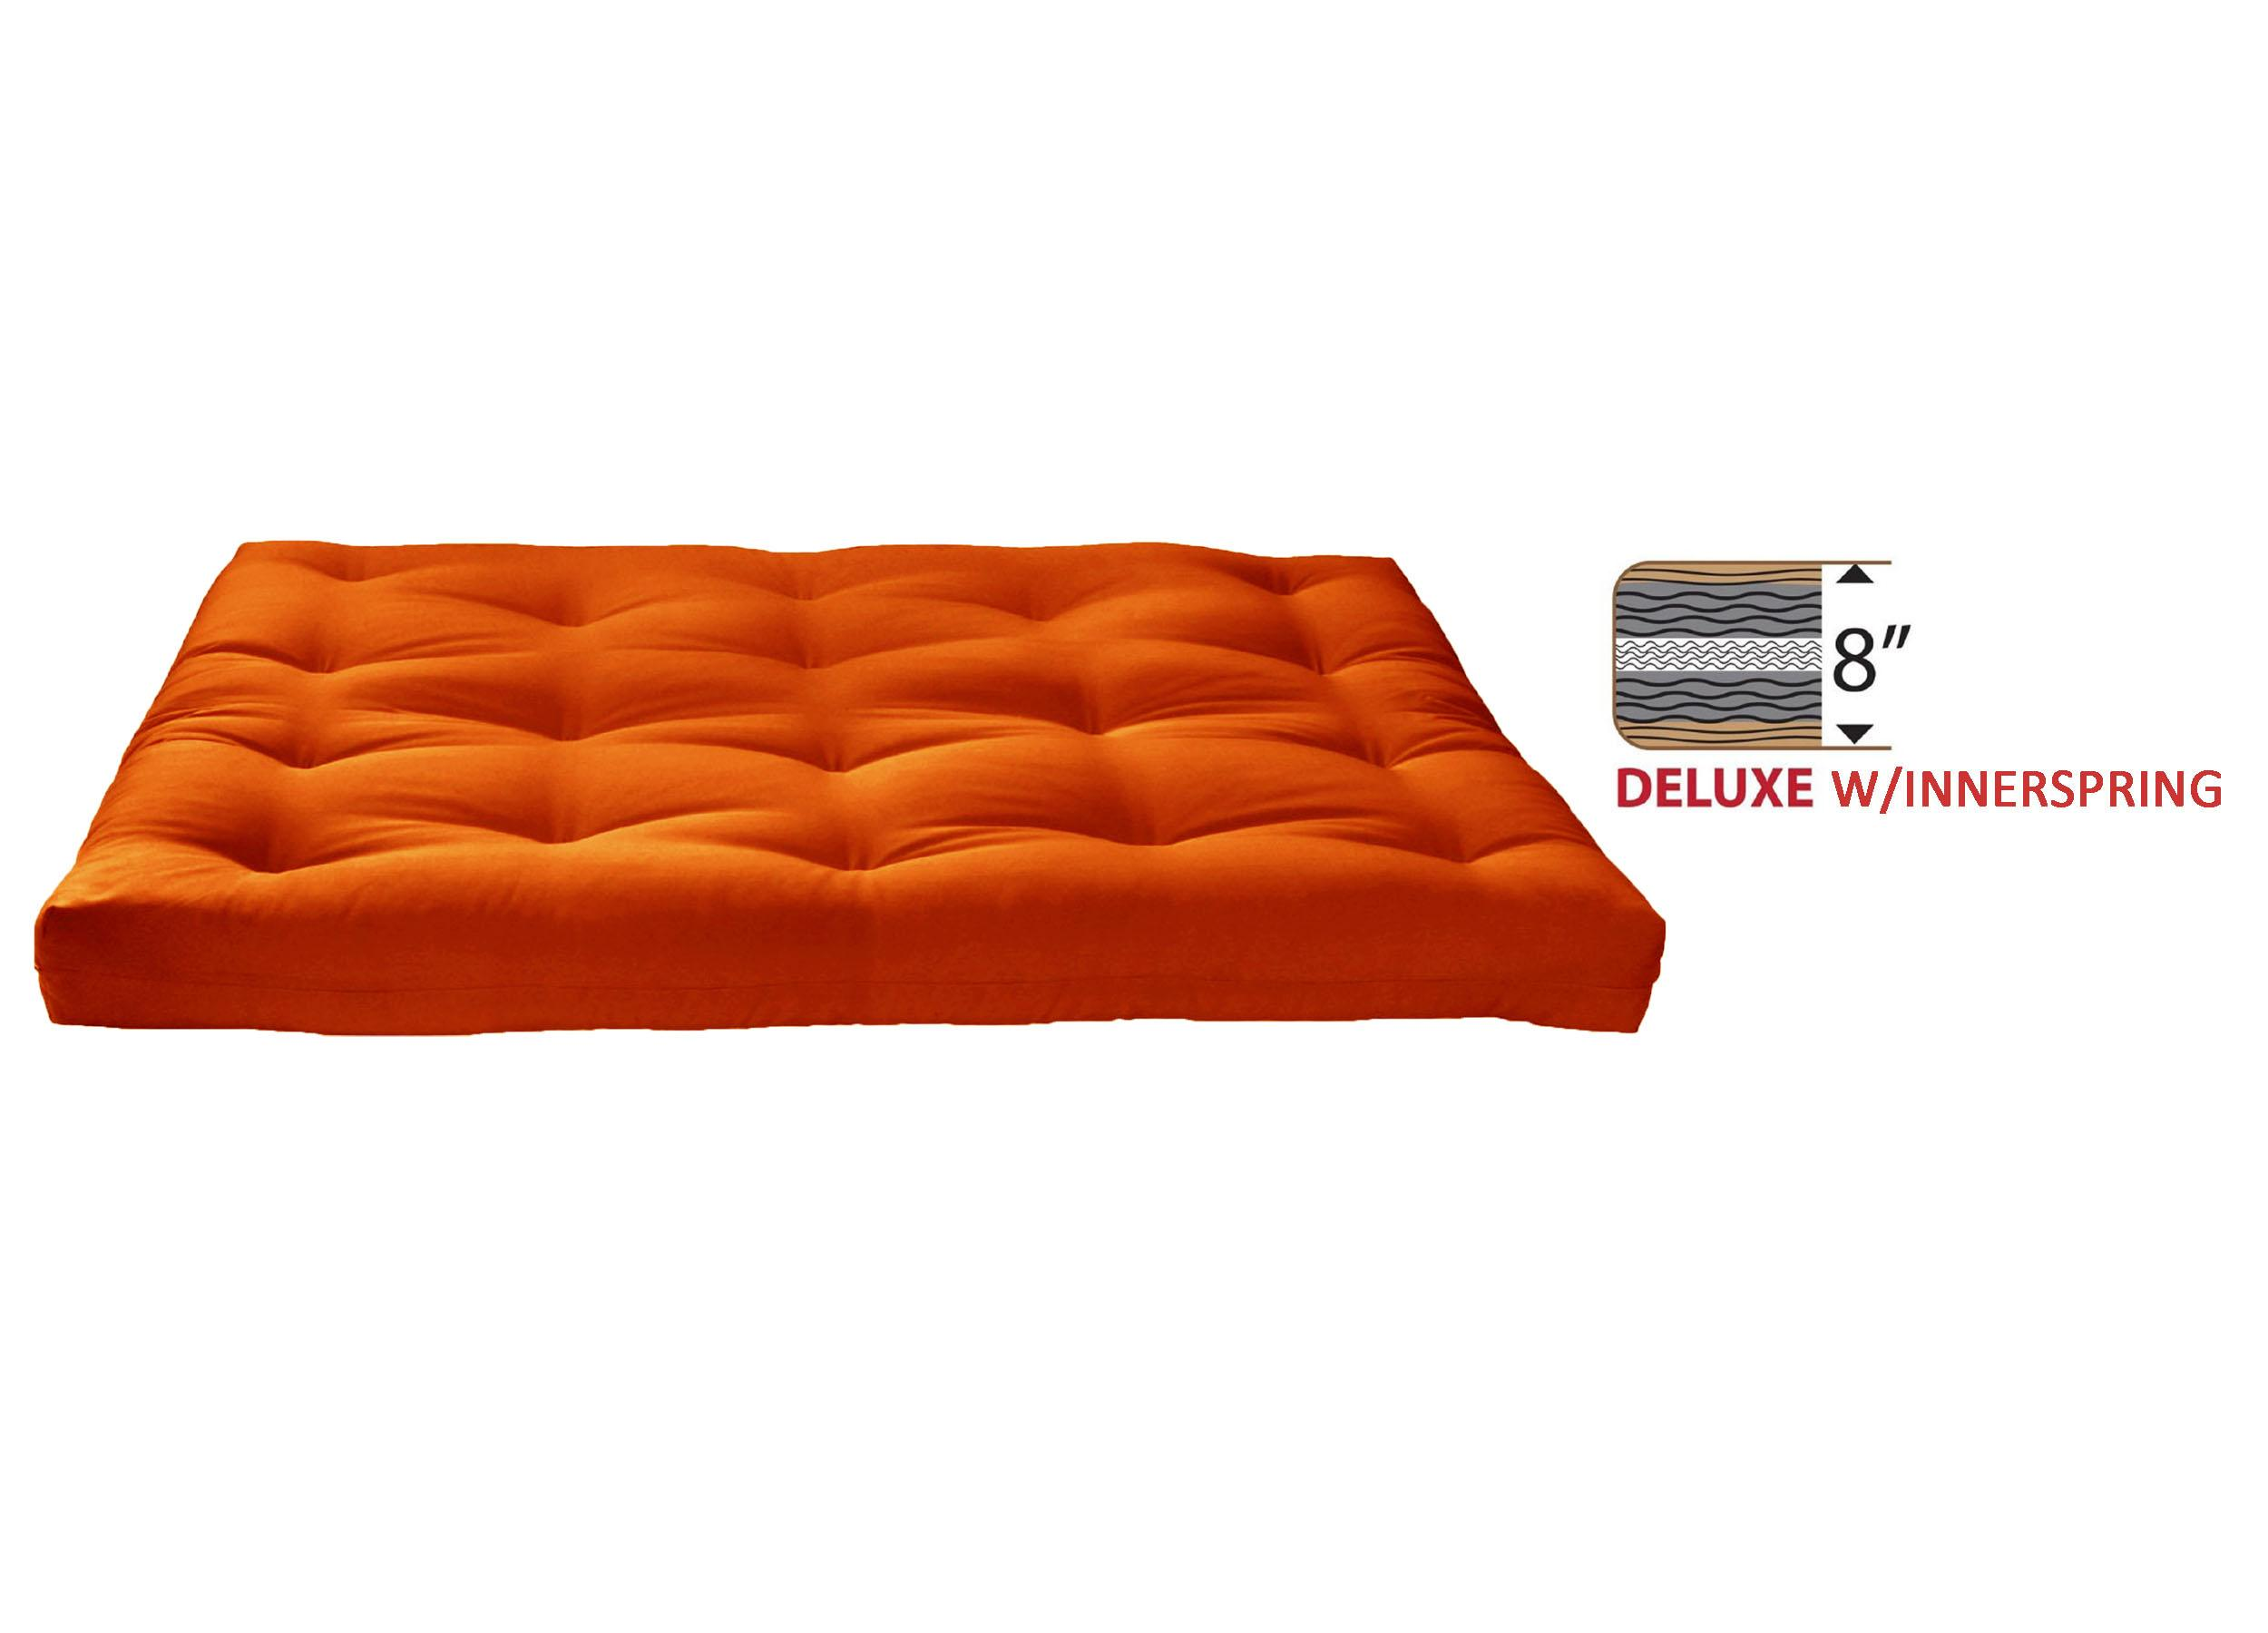 the mattress night frame product category nd futon frames hardwood store sunrise solid day covers archives